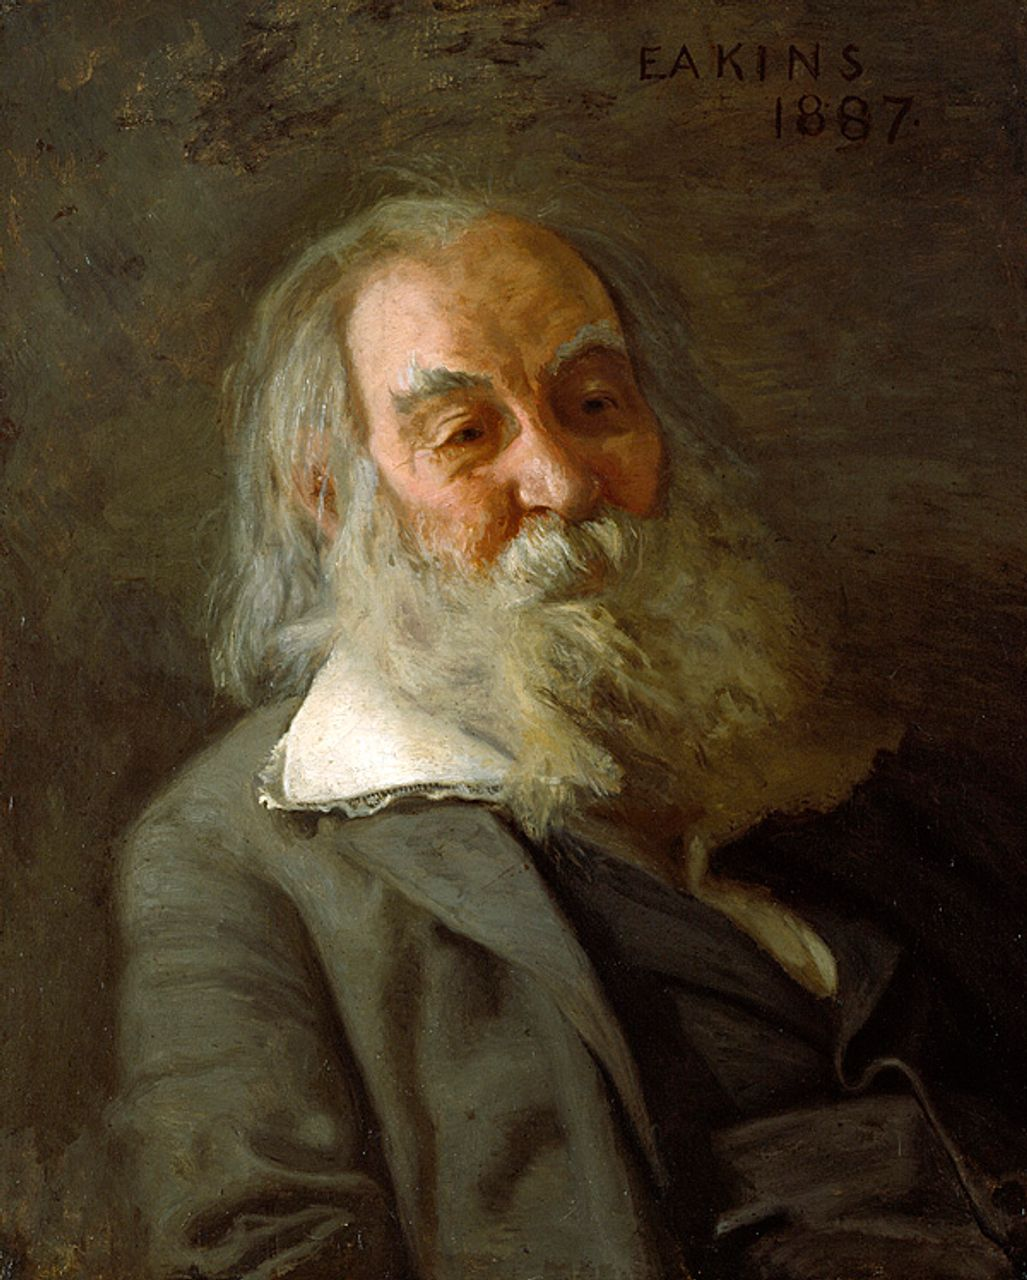 Walt Whitman by Thomas Eakins, 1887-88